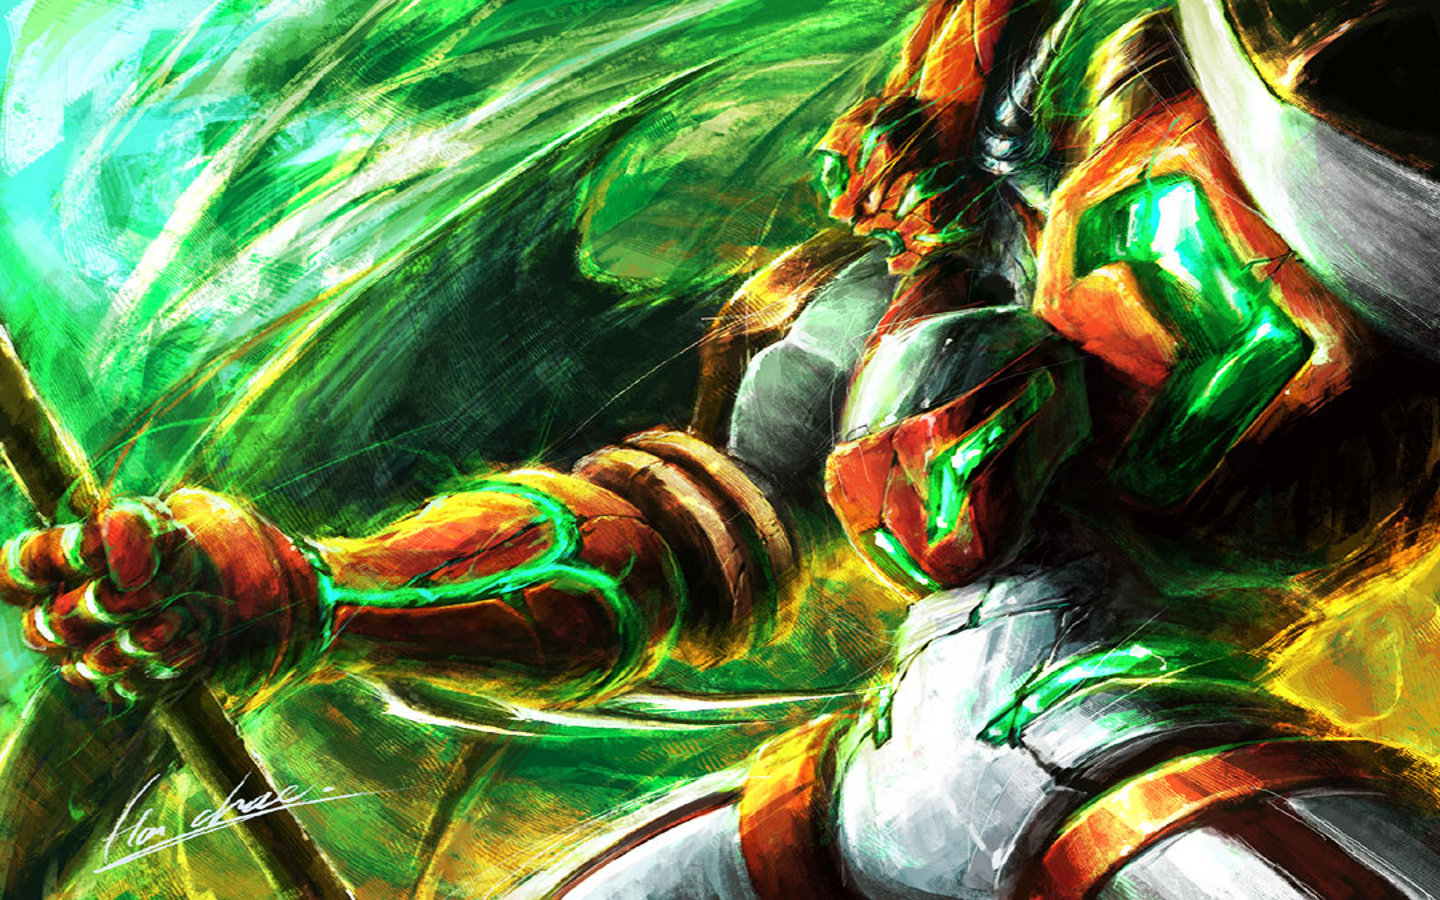 Naruto Hd Wallpaper 1600x900 3 Getter Robo Hd Wallpapers Background Images